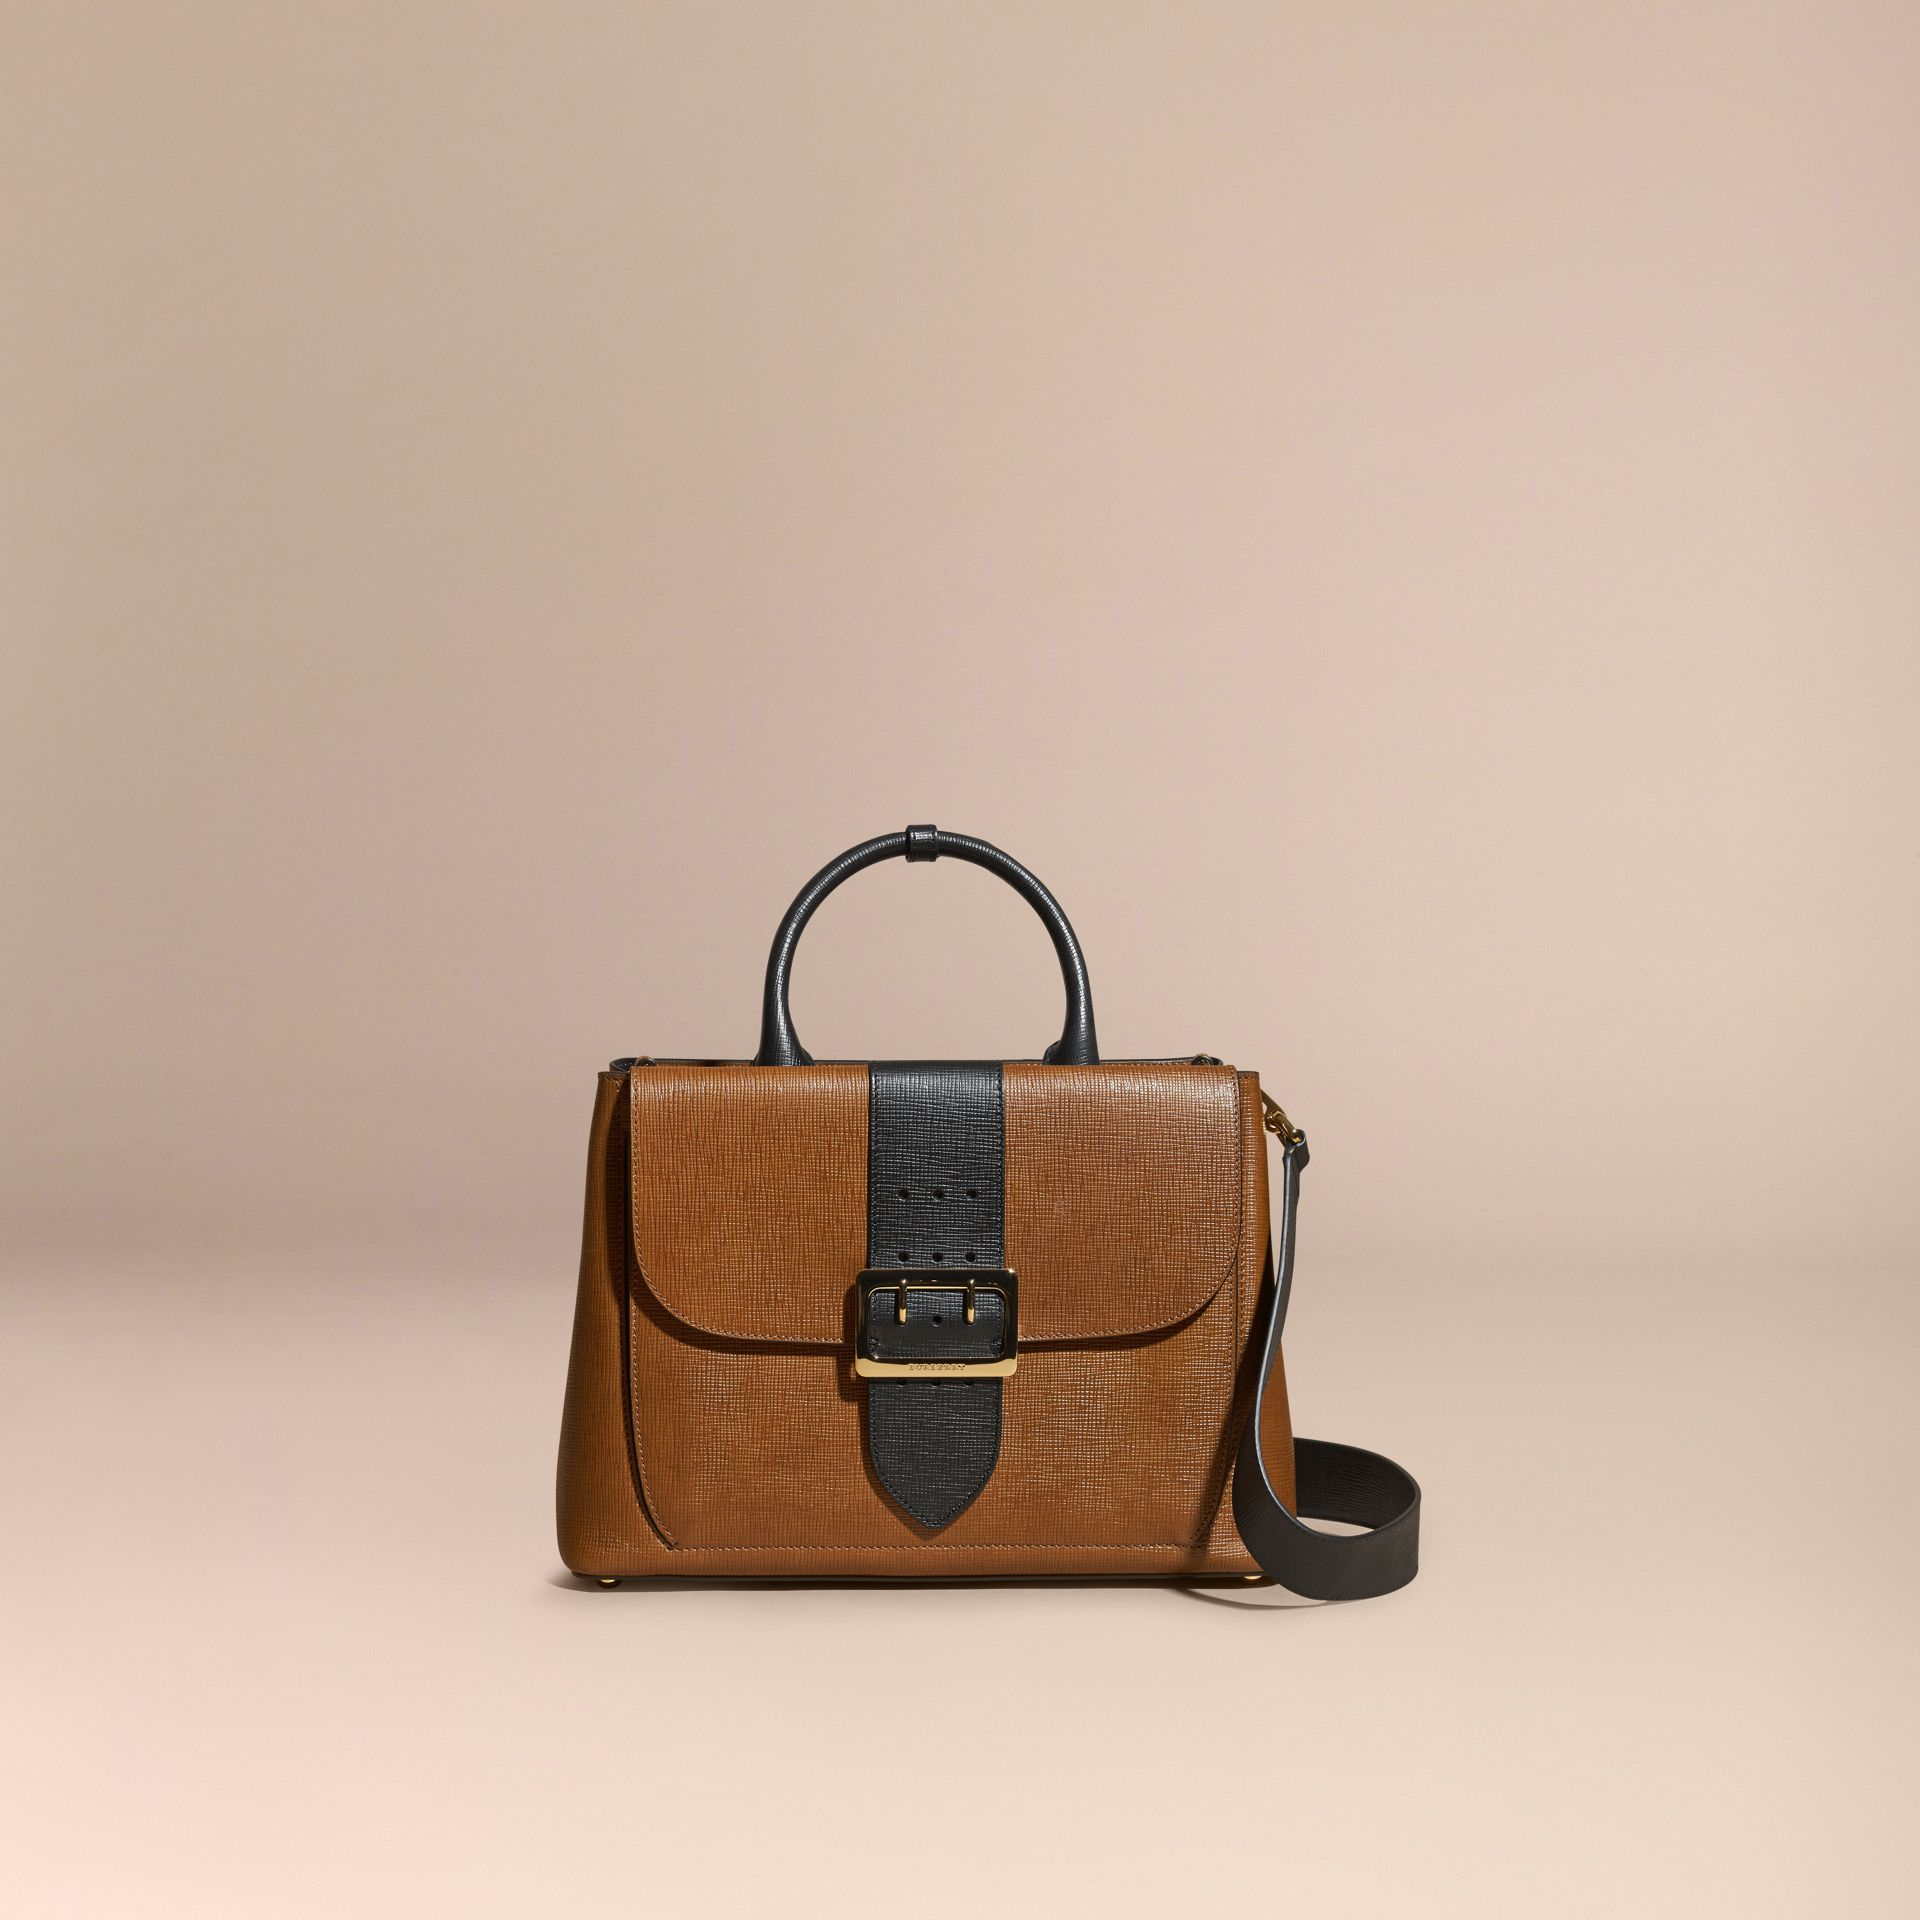 Tan The Medium Saddle Bag in Textured Bonded Leather - gallery image 9